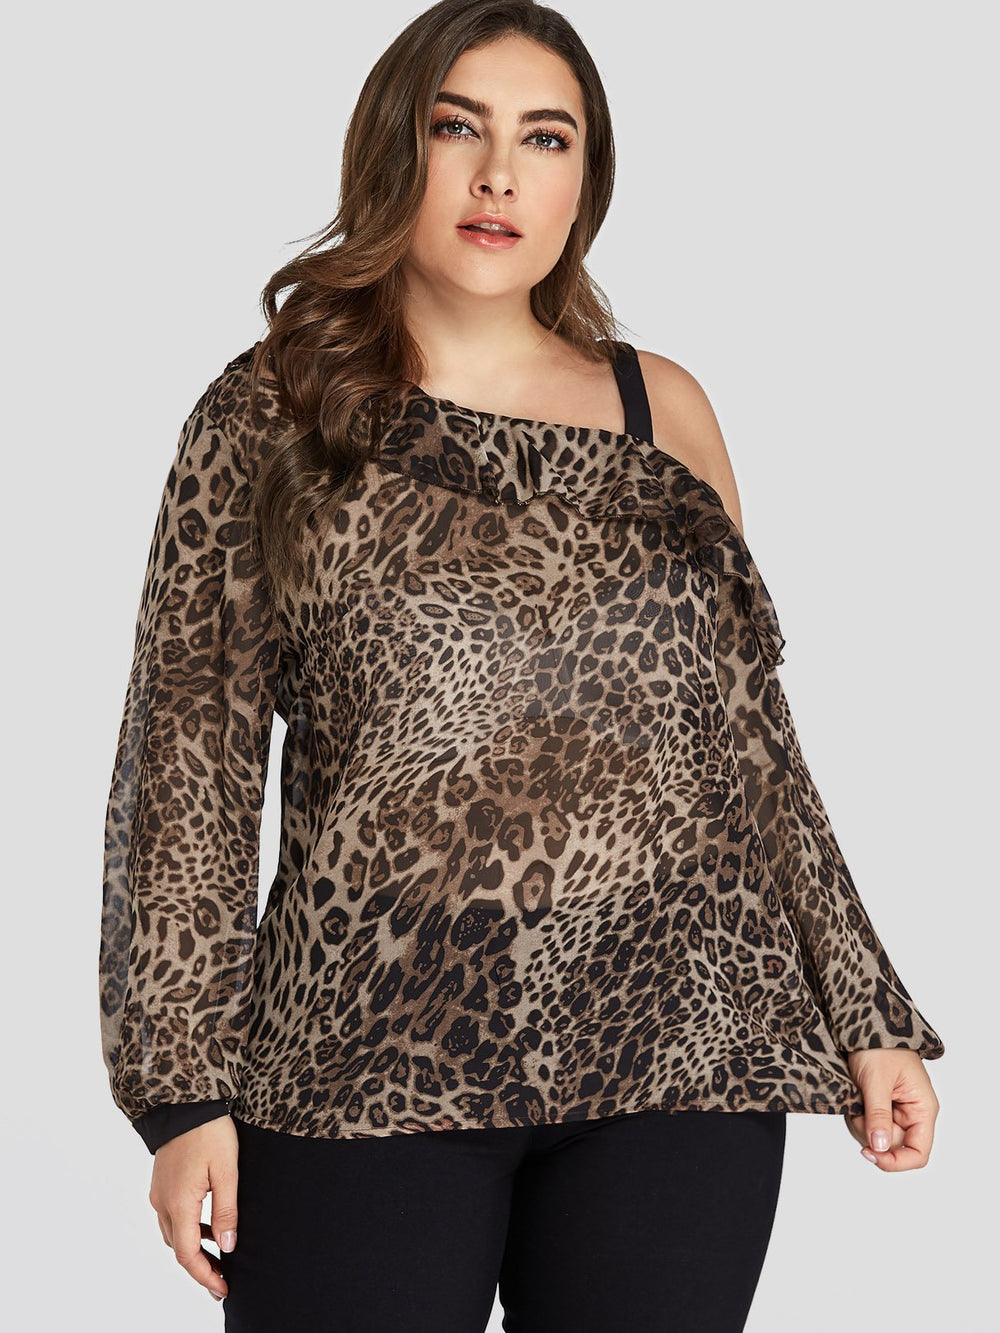 One Shoulder Leopard Long Sleeve Plus Size Tops